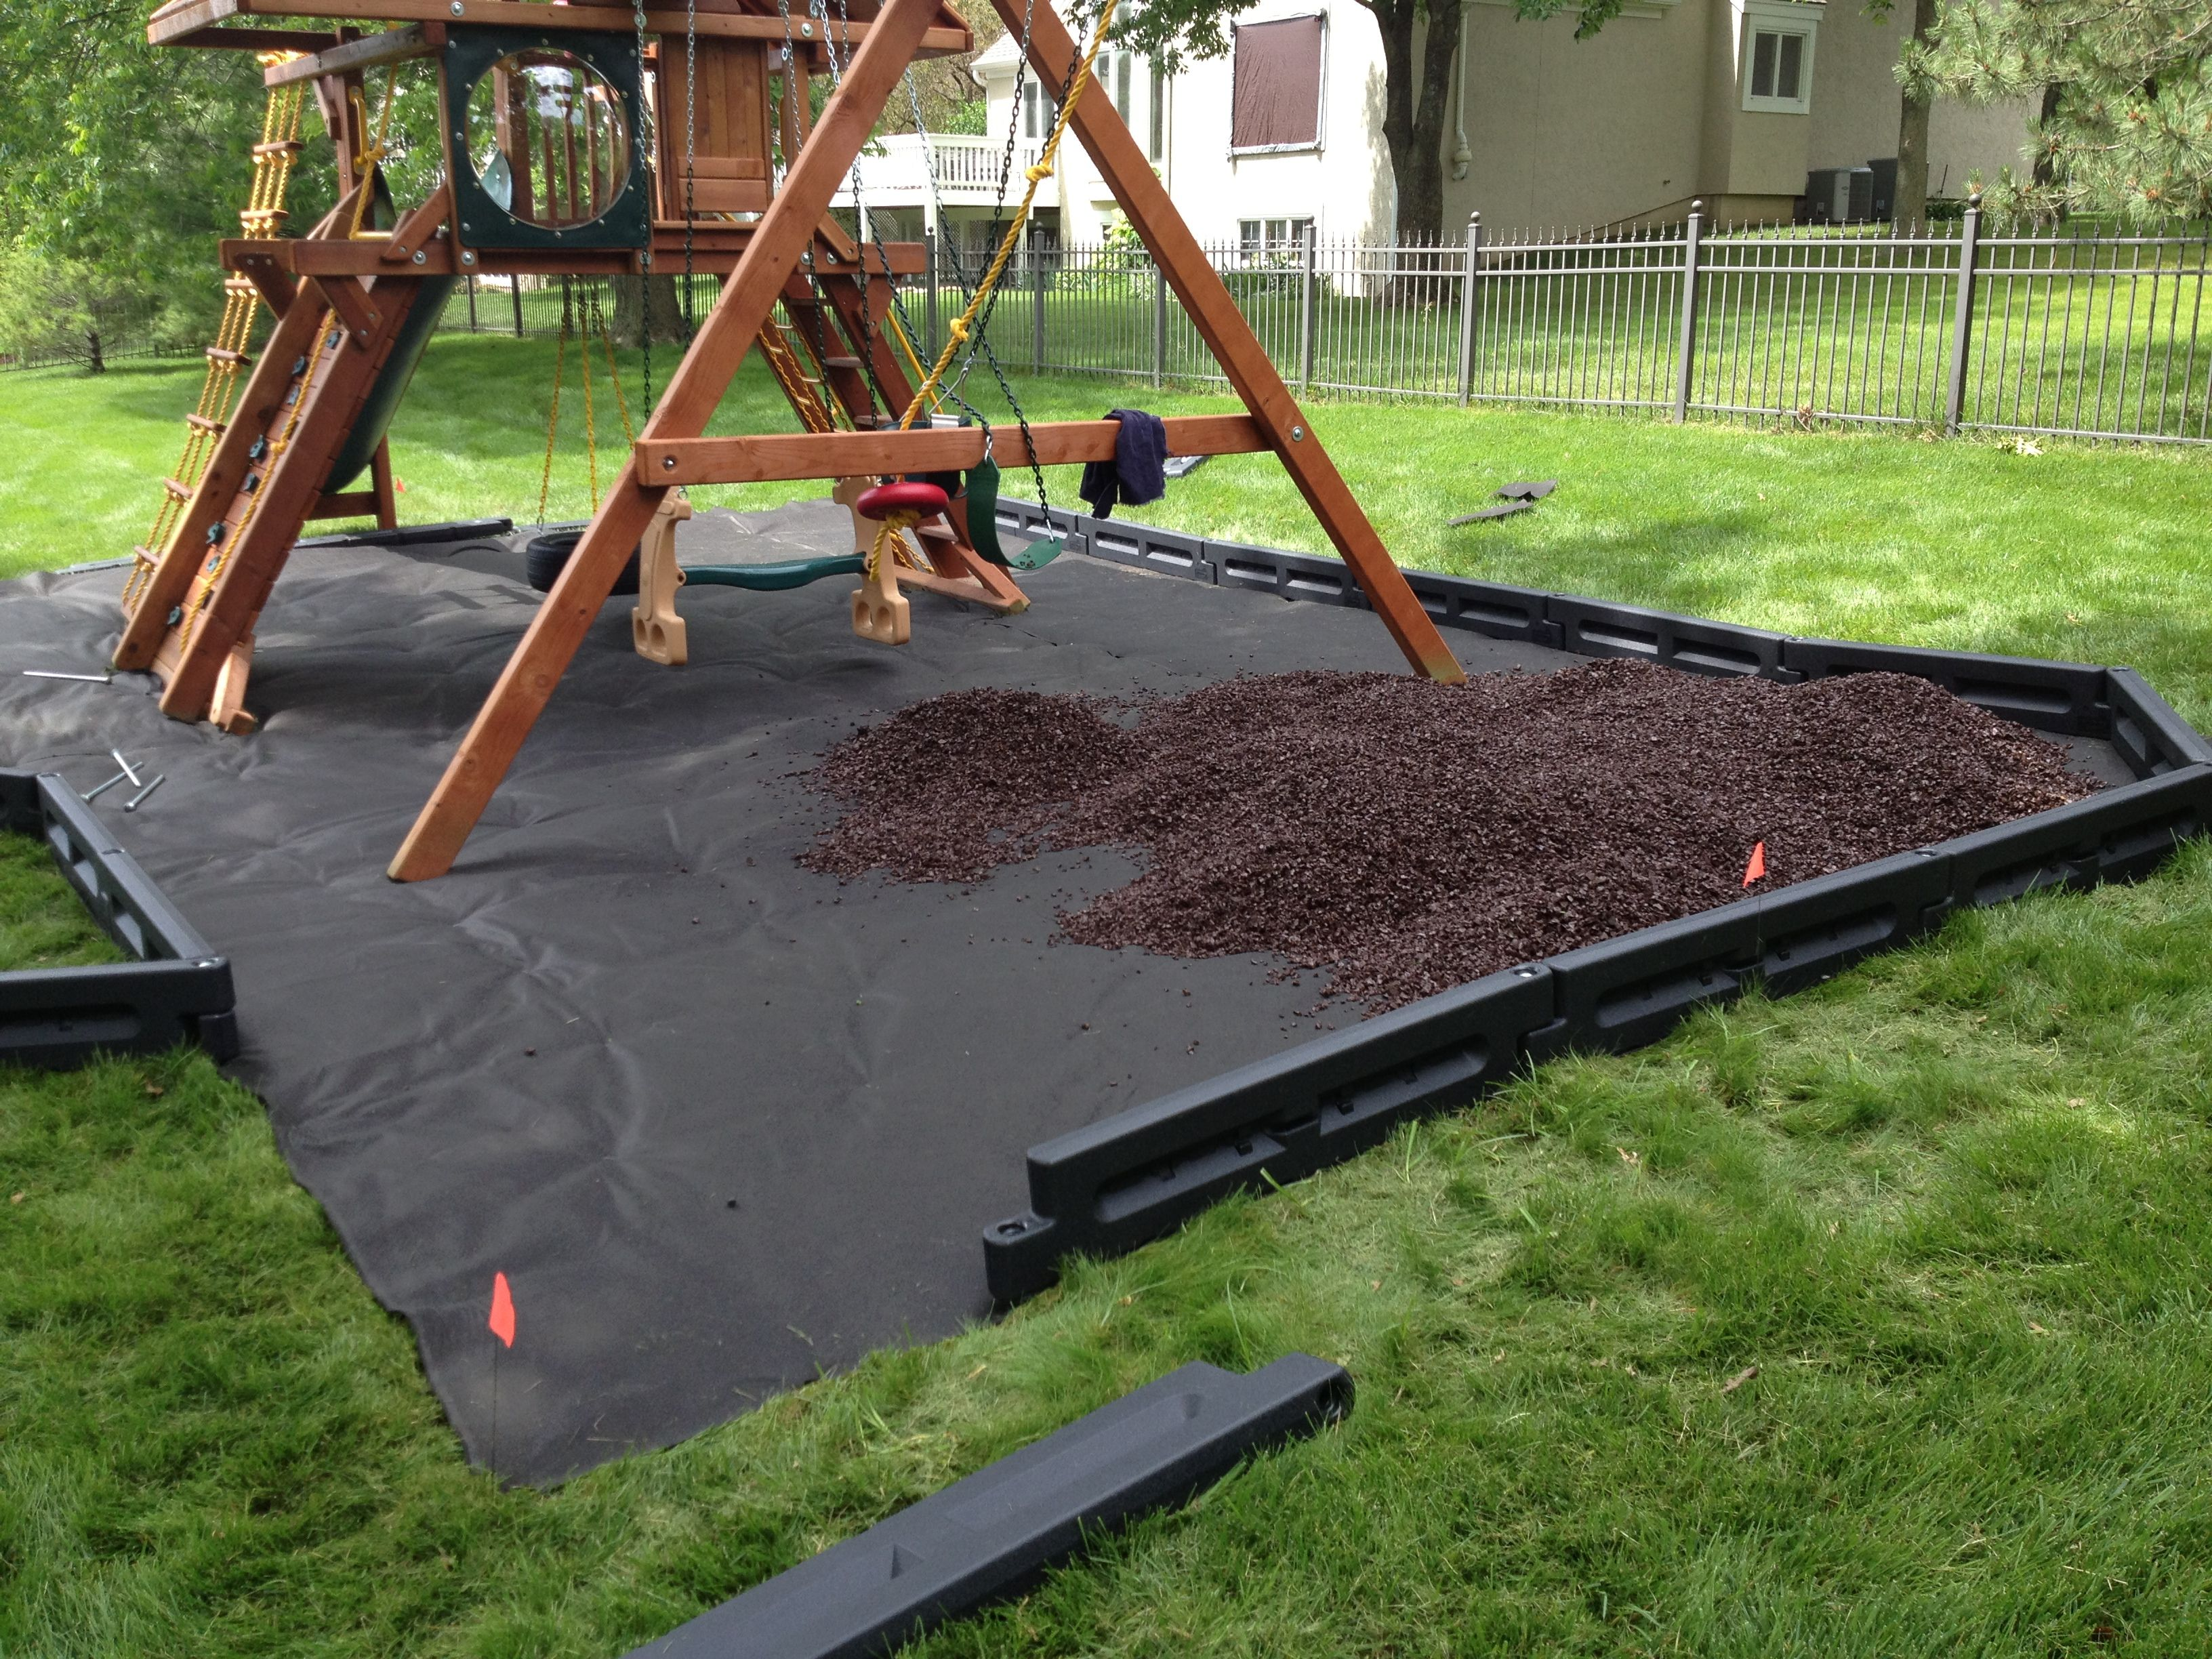 weed barrier borders and mulch under a playset playground